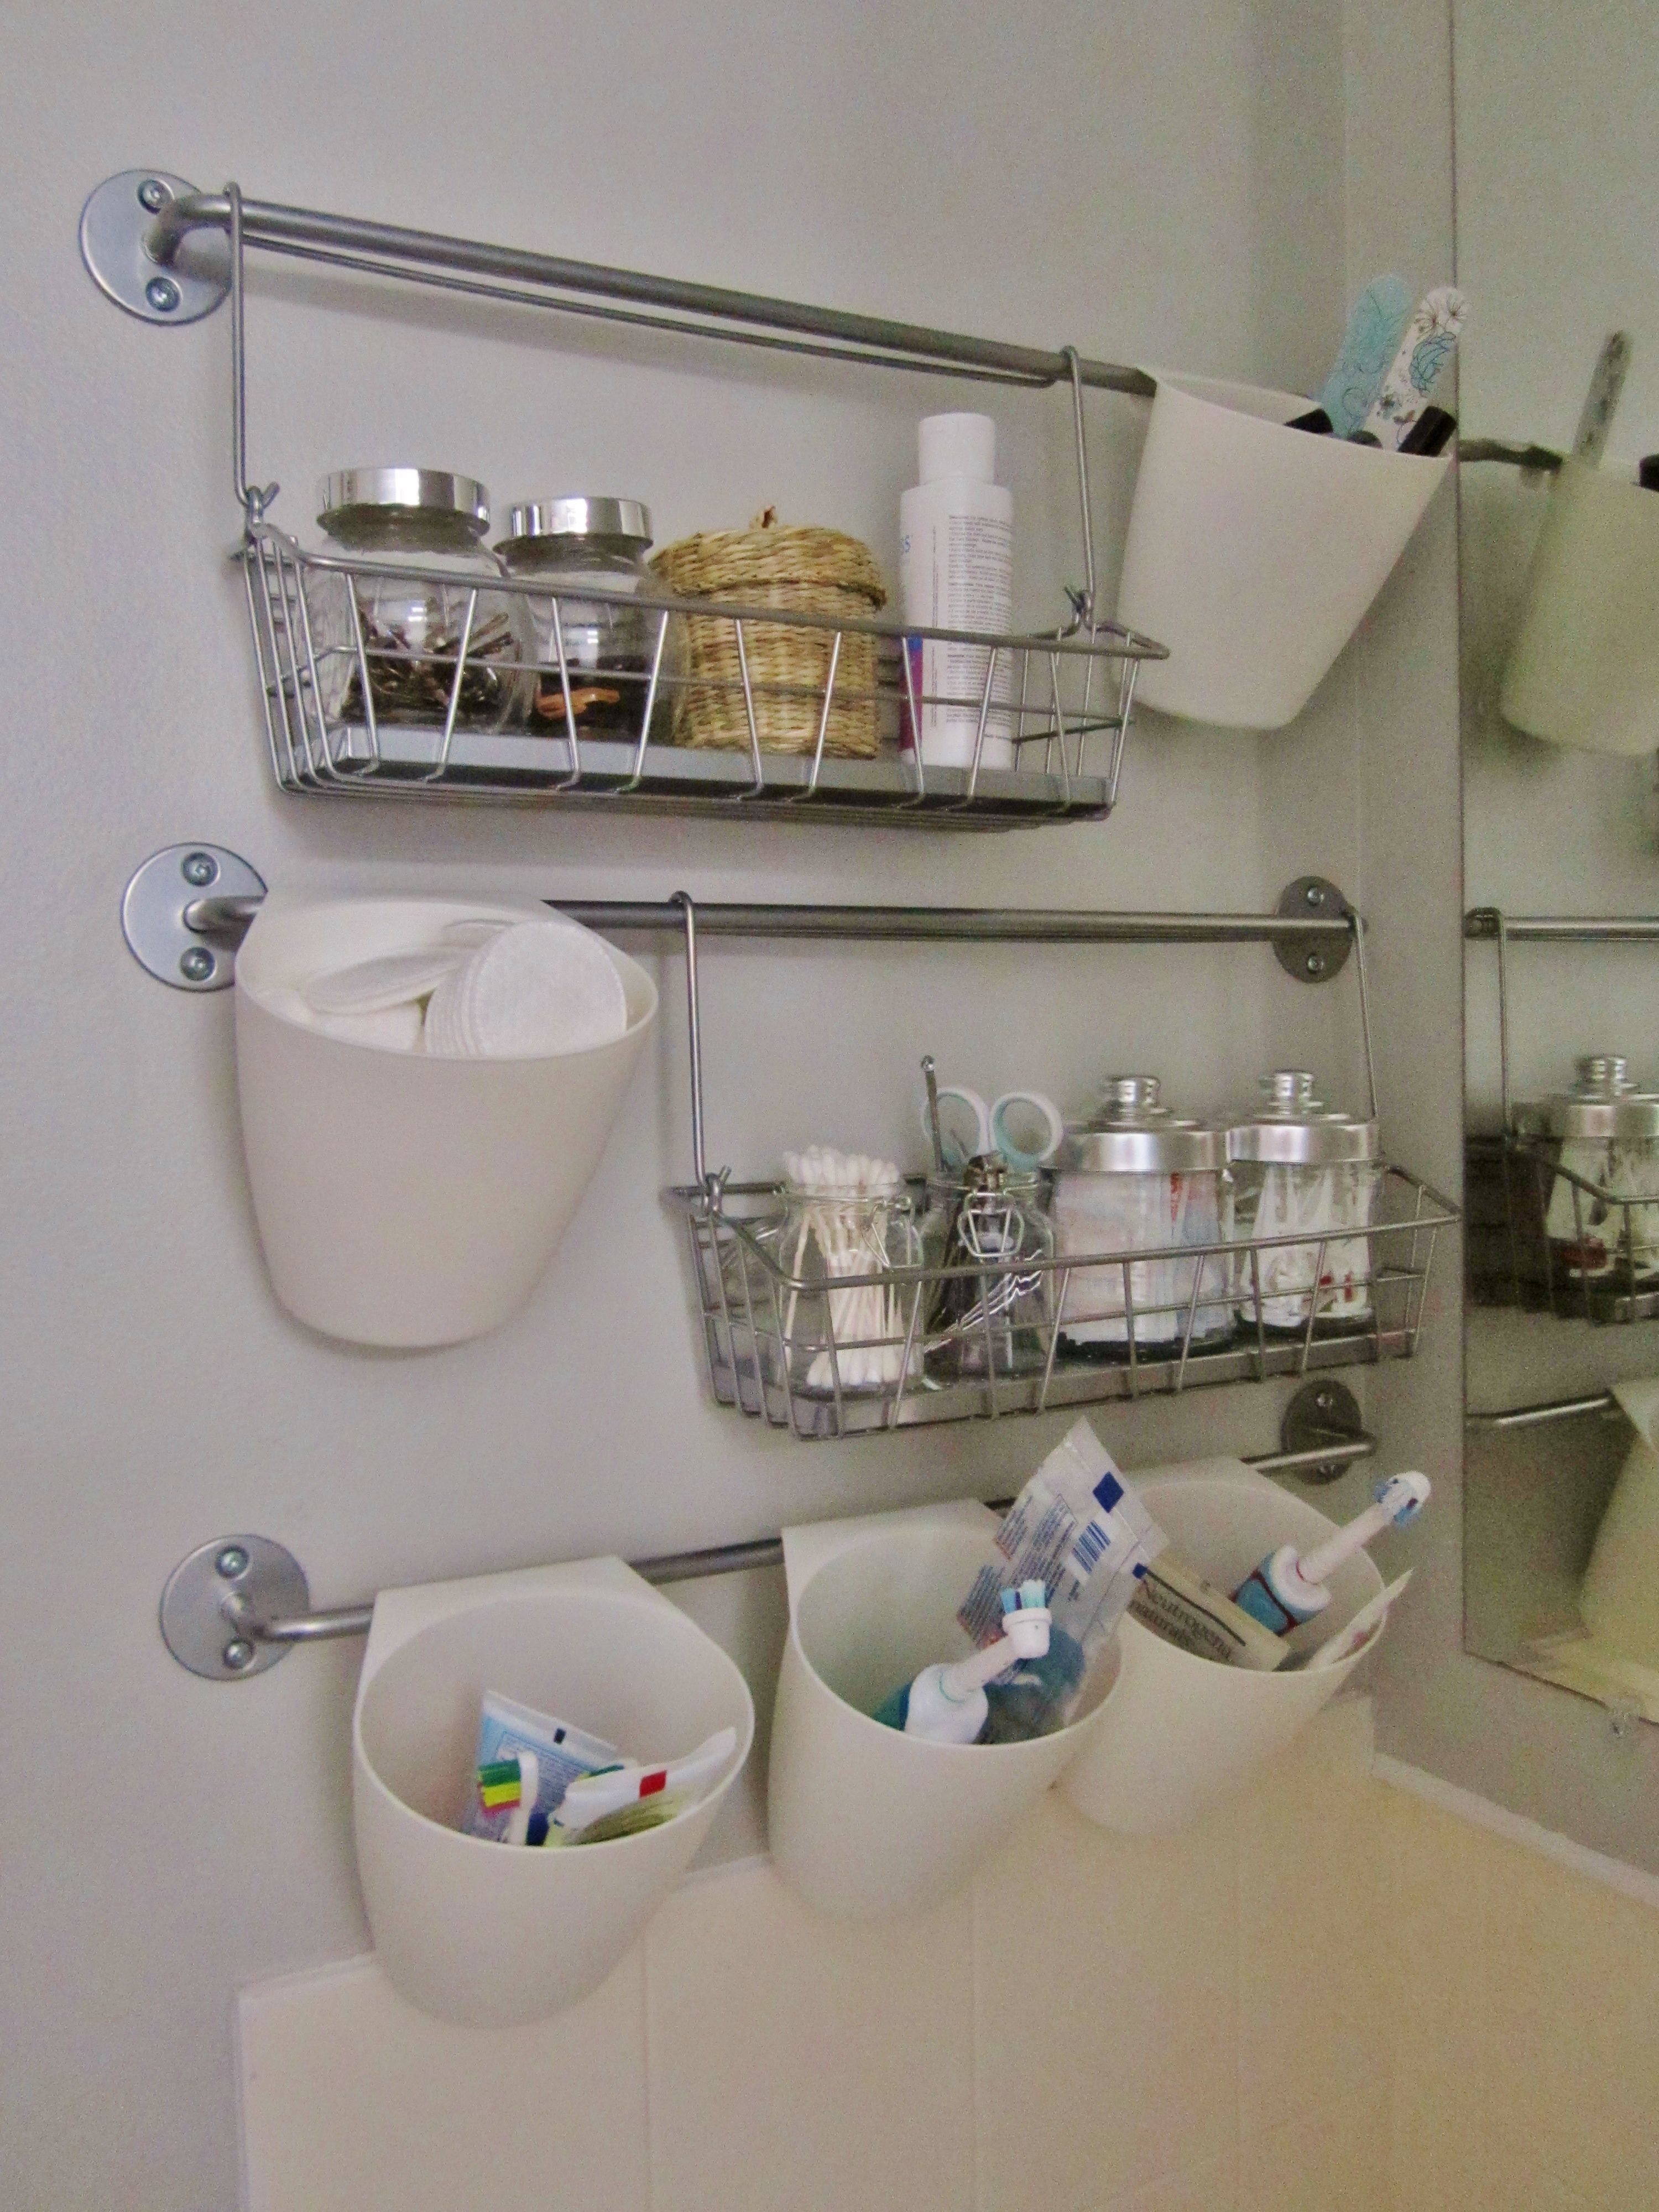 Bathroom organization Using Ikea Bygel Rail System The Elm Life